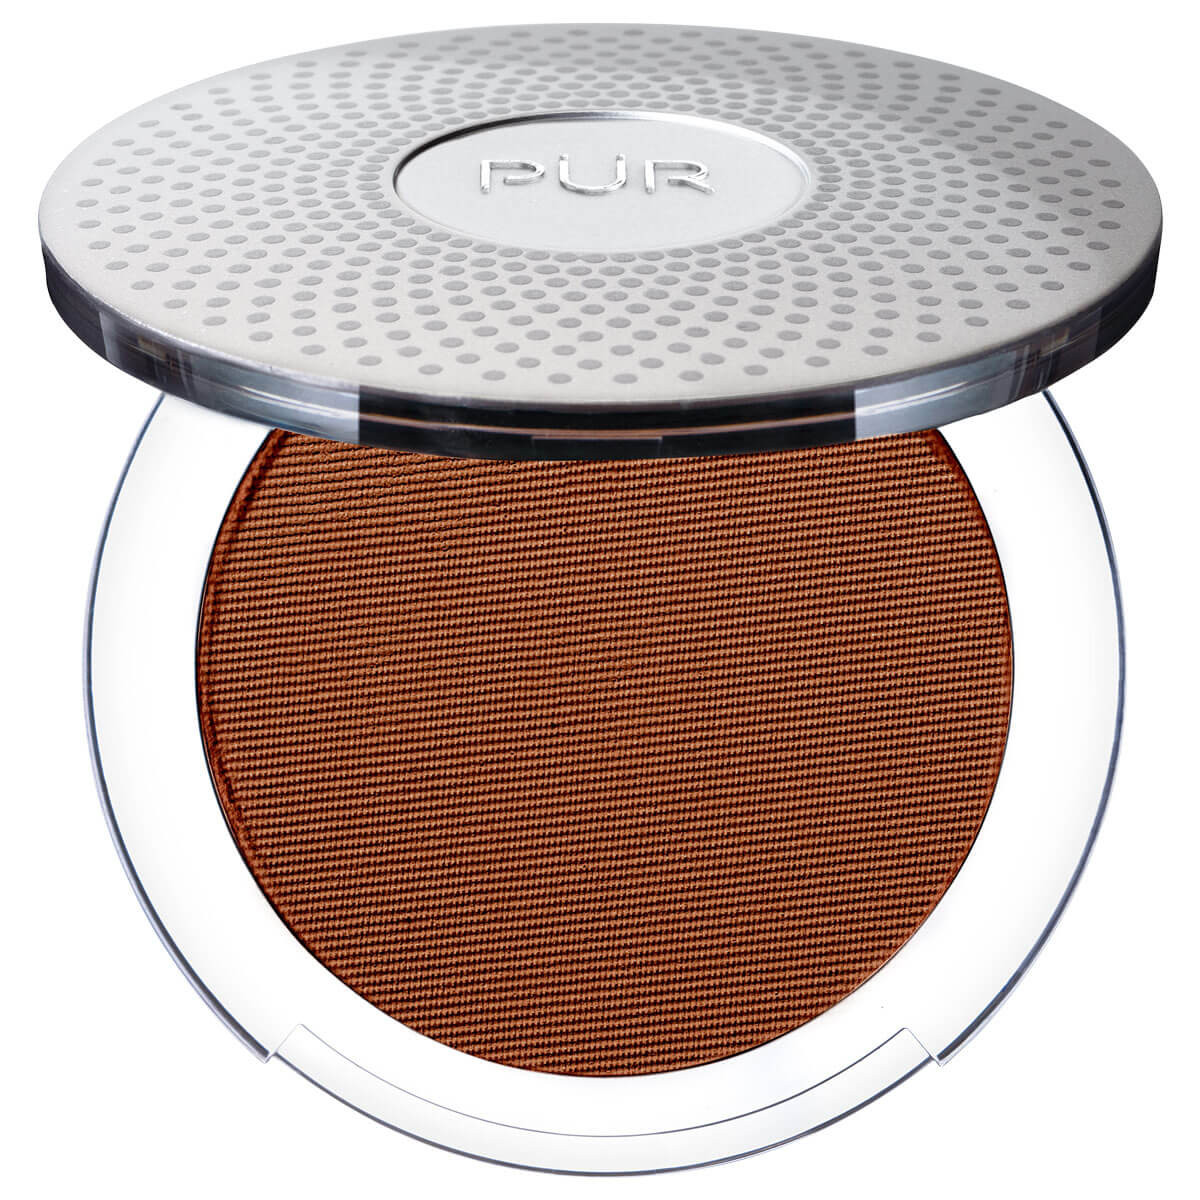 4-in-1 Pressed Mineral Makeup Foundation with Skincare Ingredients in Deeper/DPP1